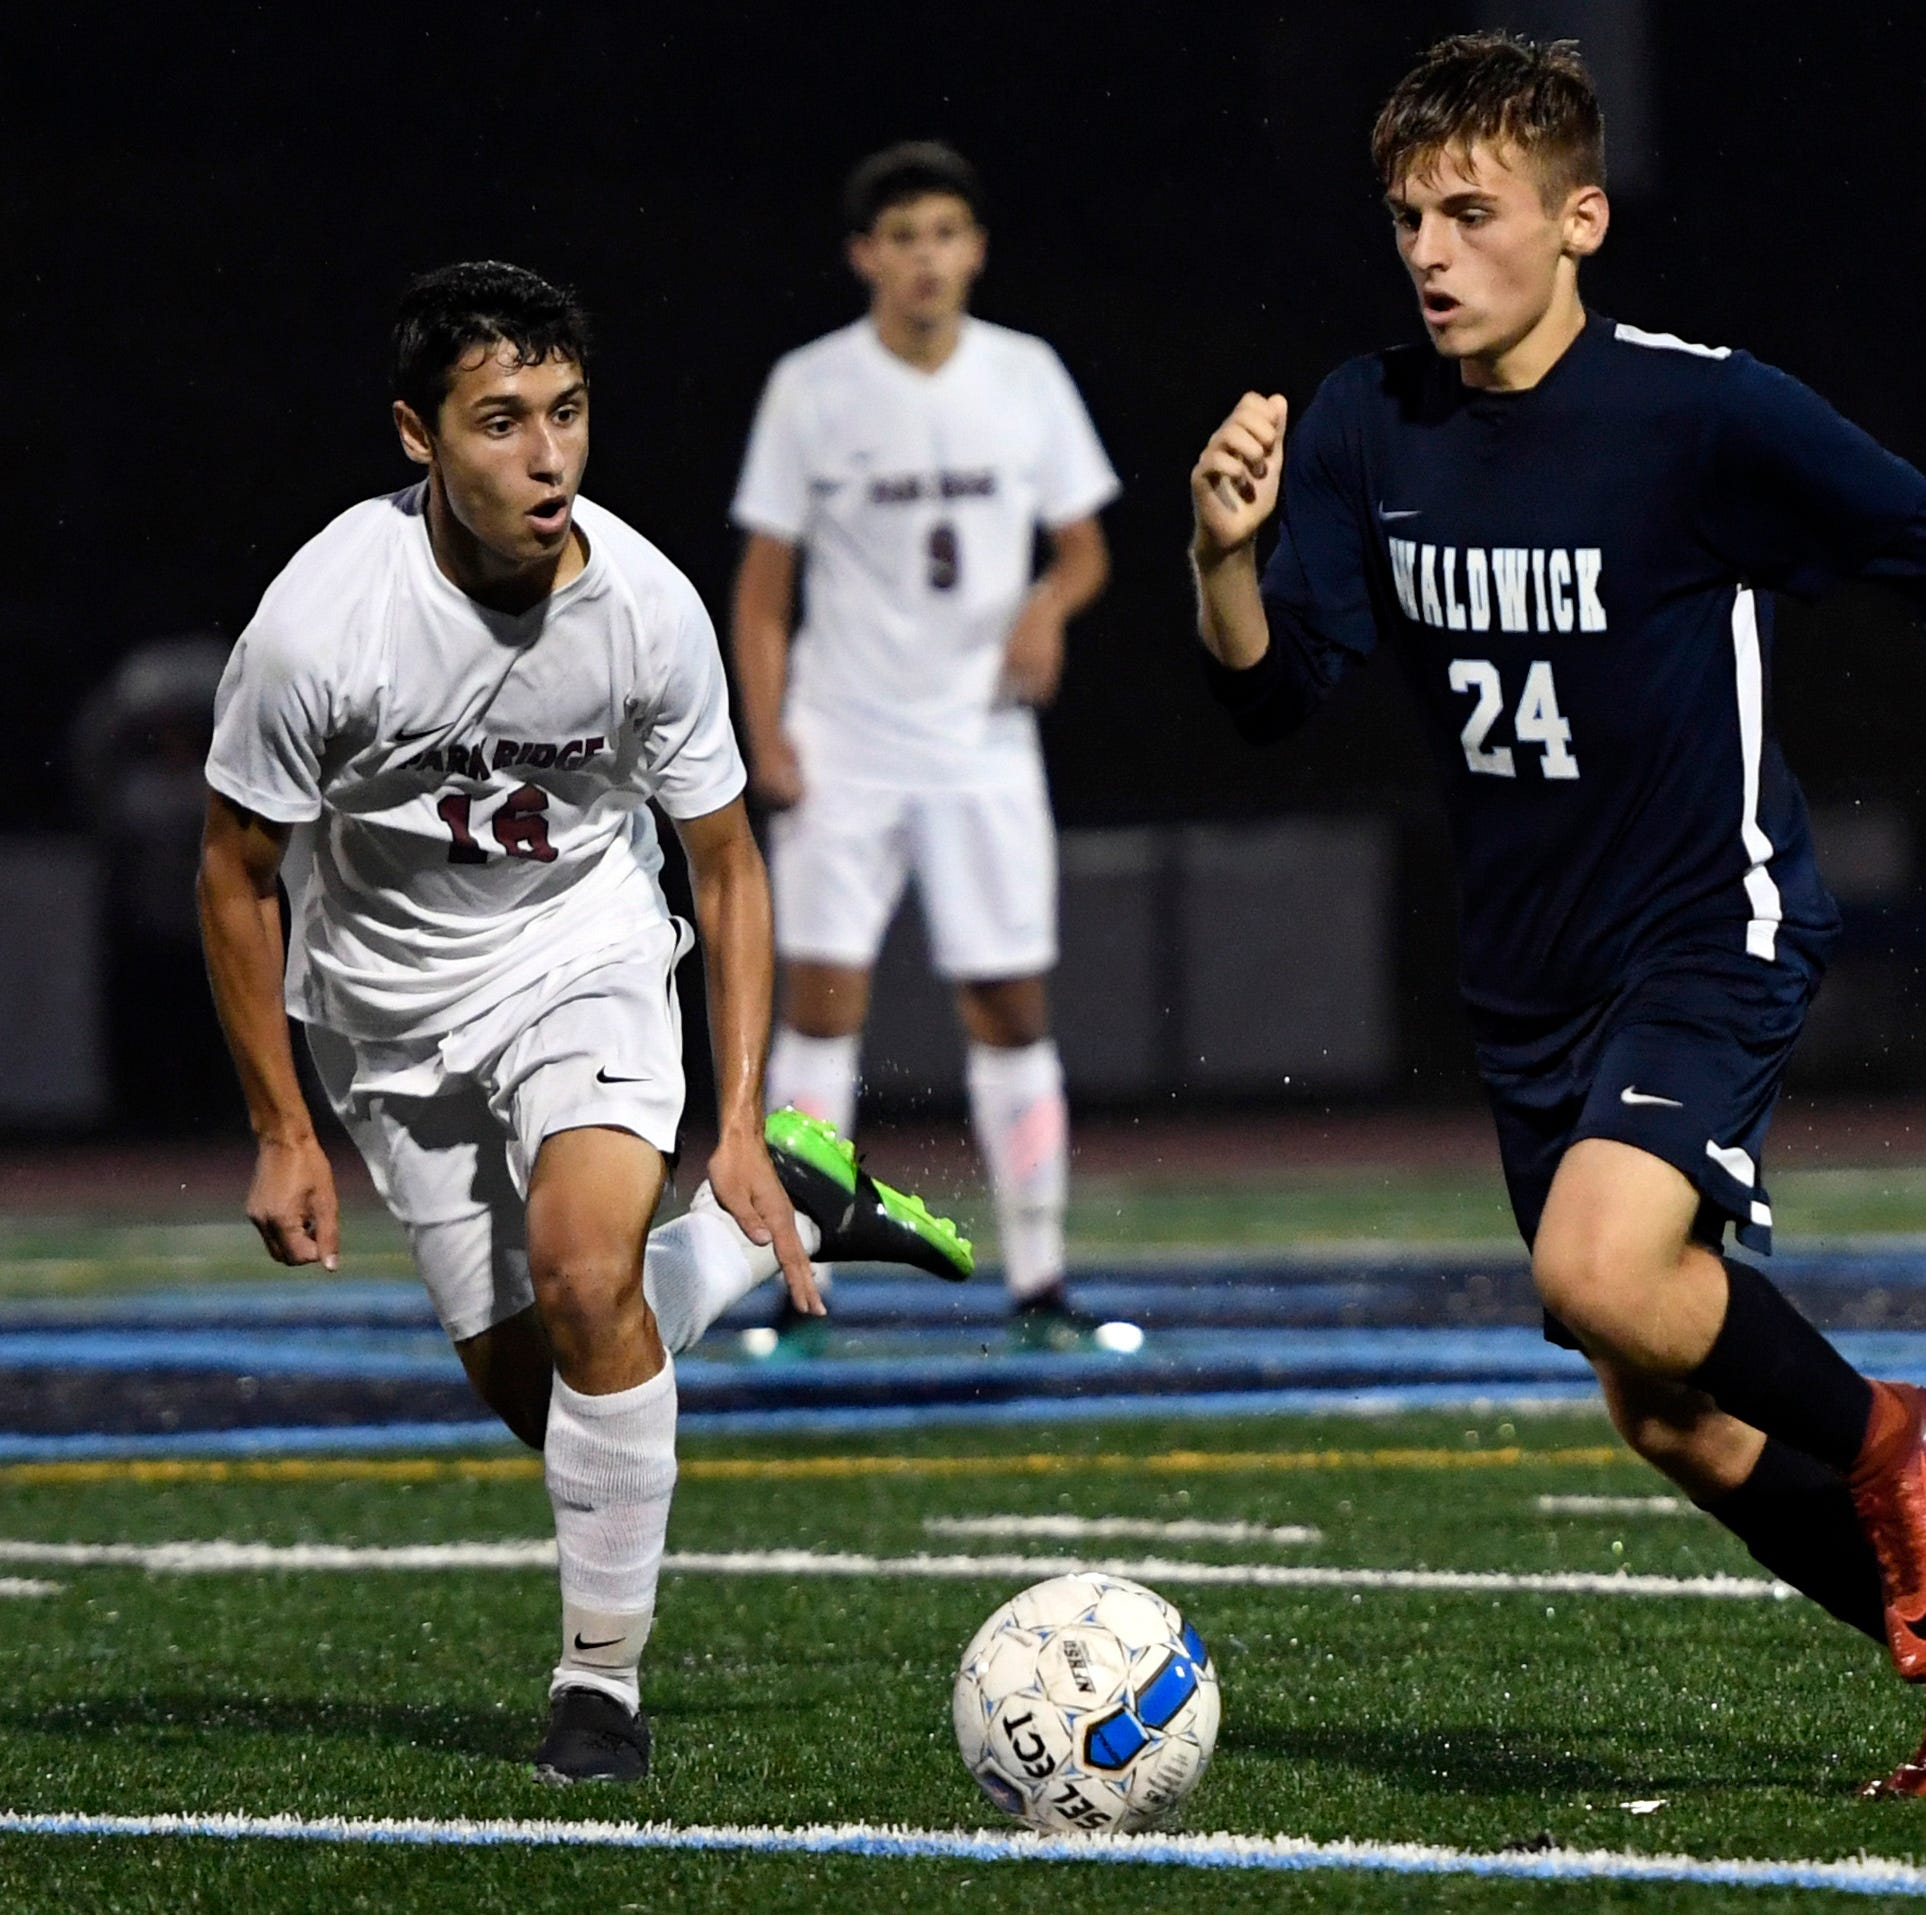 Bergen County boys soccer tournament: Results from the quarterfinals